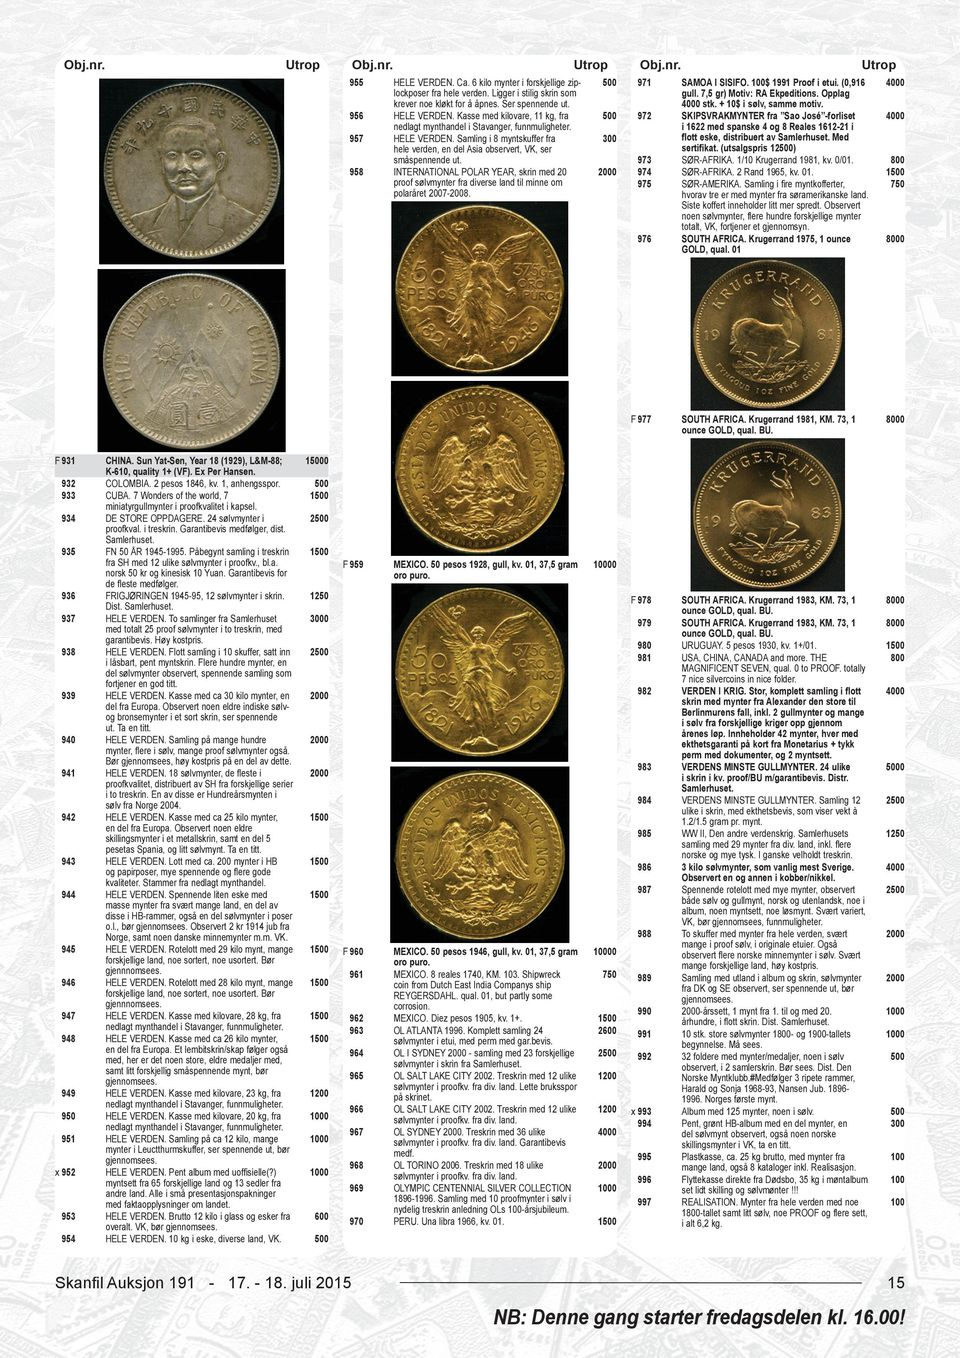 971 972 F 977 SOUTH AFRICA. Krugerrand 1981, KM. 73, 1 unce GOLD, qual. BU. 0 F 978 SOUTH AFRICA. Krugerrand 1983, KM. 73, 1 unce GOLD, qual. BU. SOUTH AFRICA. Krugerrand 1983, KM. 73, 1 unce GOLD, qual. BU. URUGUAY.